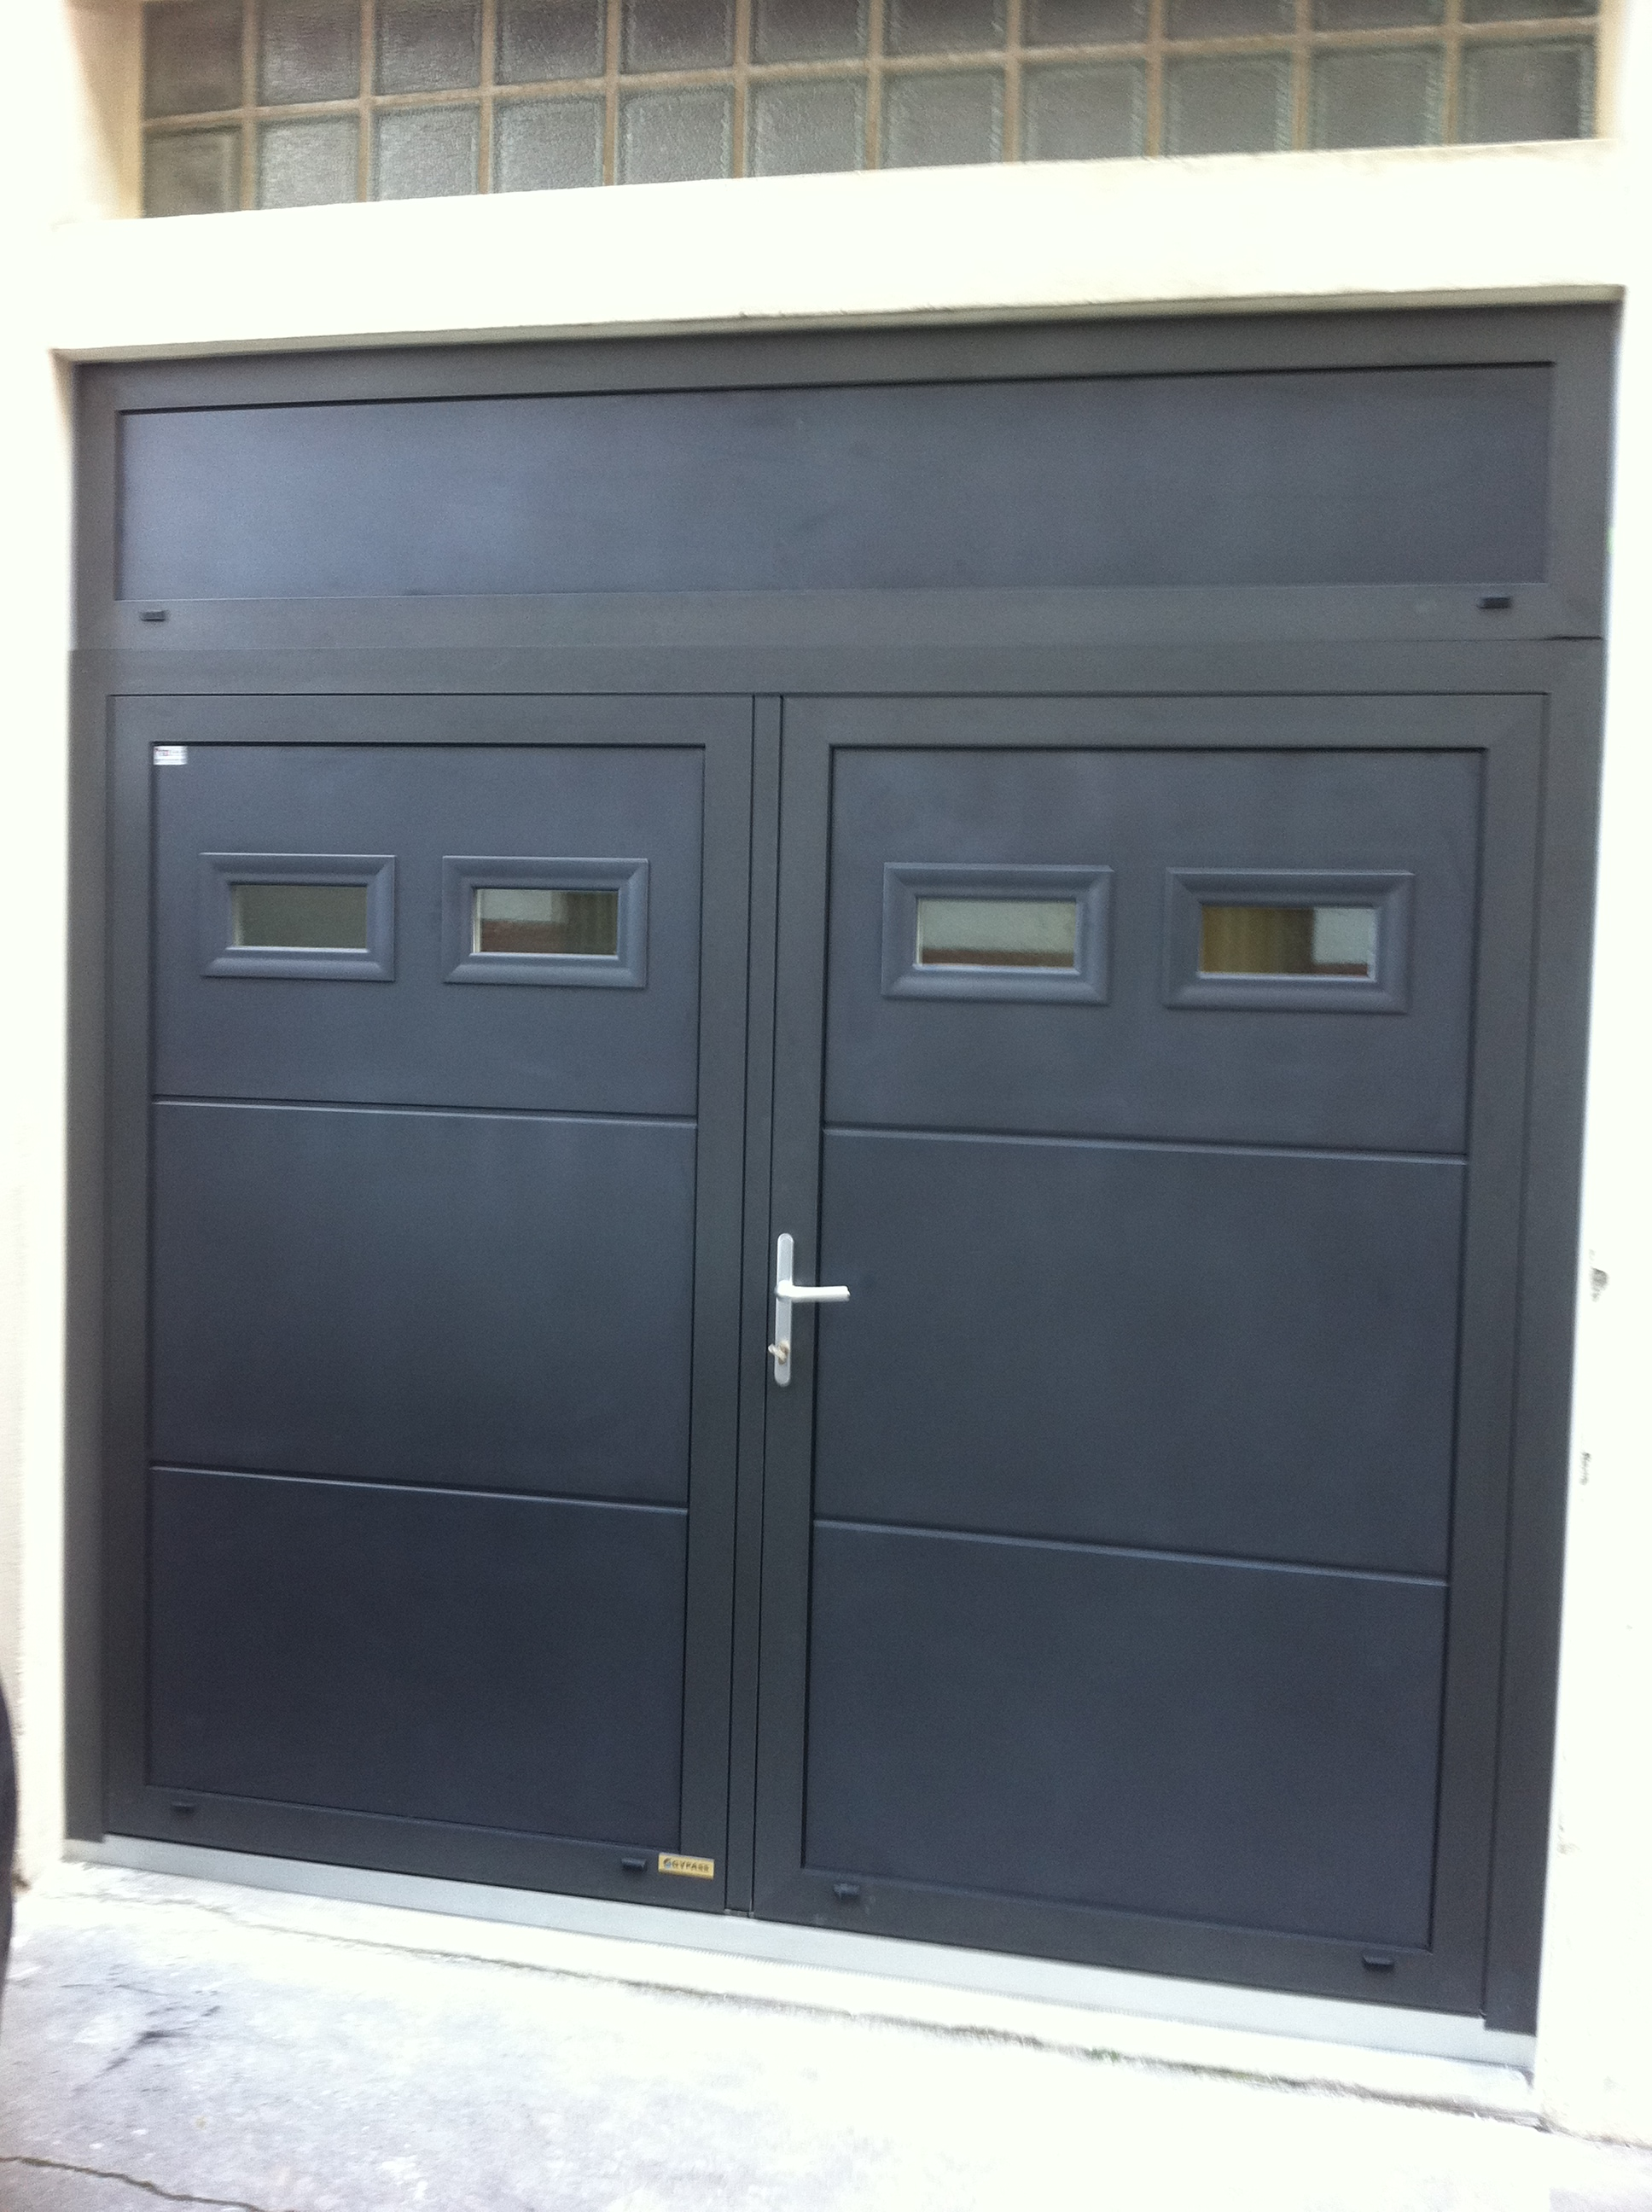 Porte de garage pour maison individuelle par bonno ouvertures for Porte 2 battants interieur